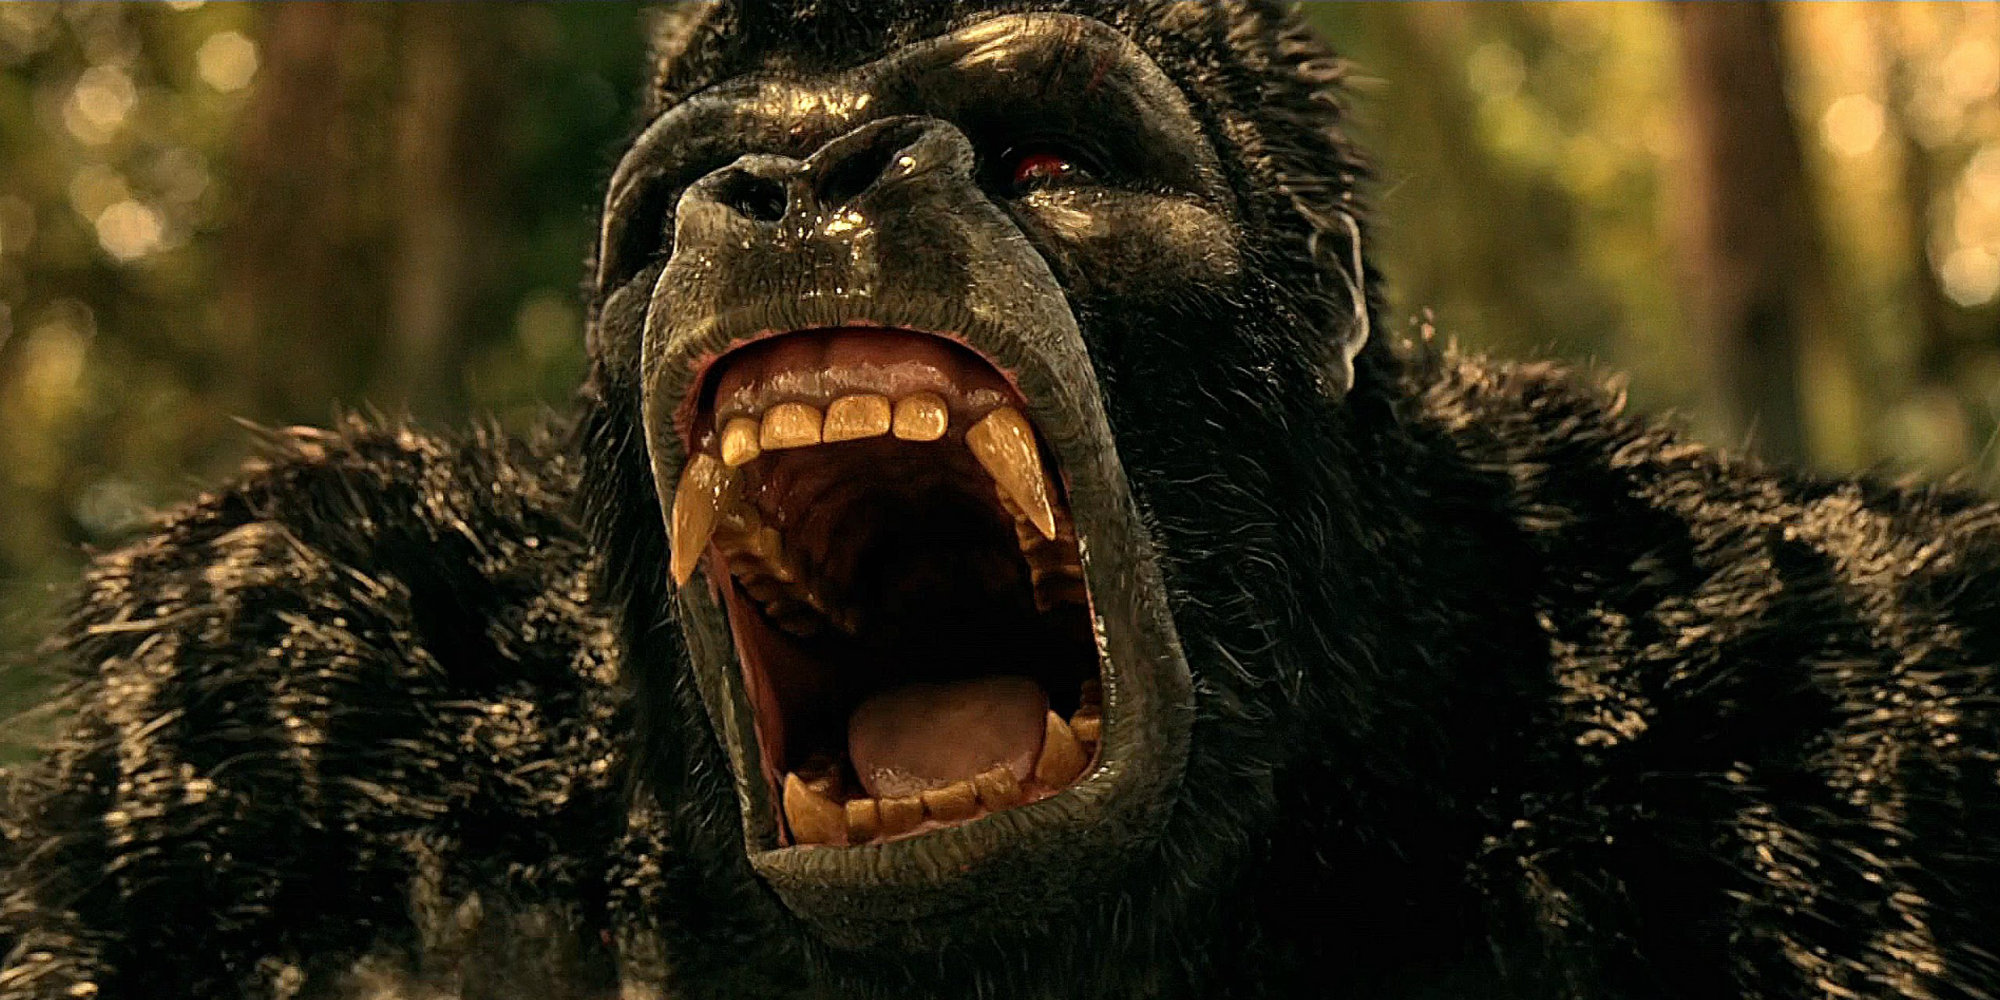 The Flash season 2 - Gorilla Grodd